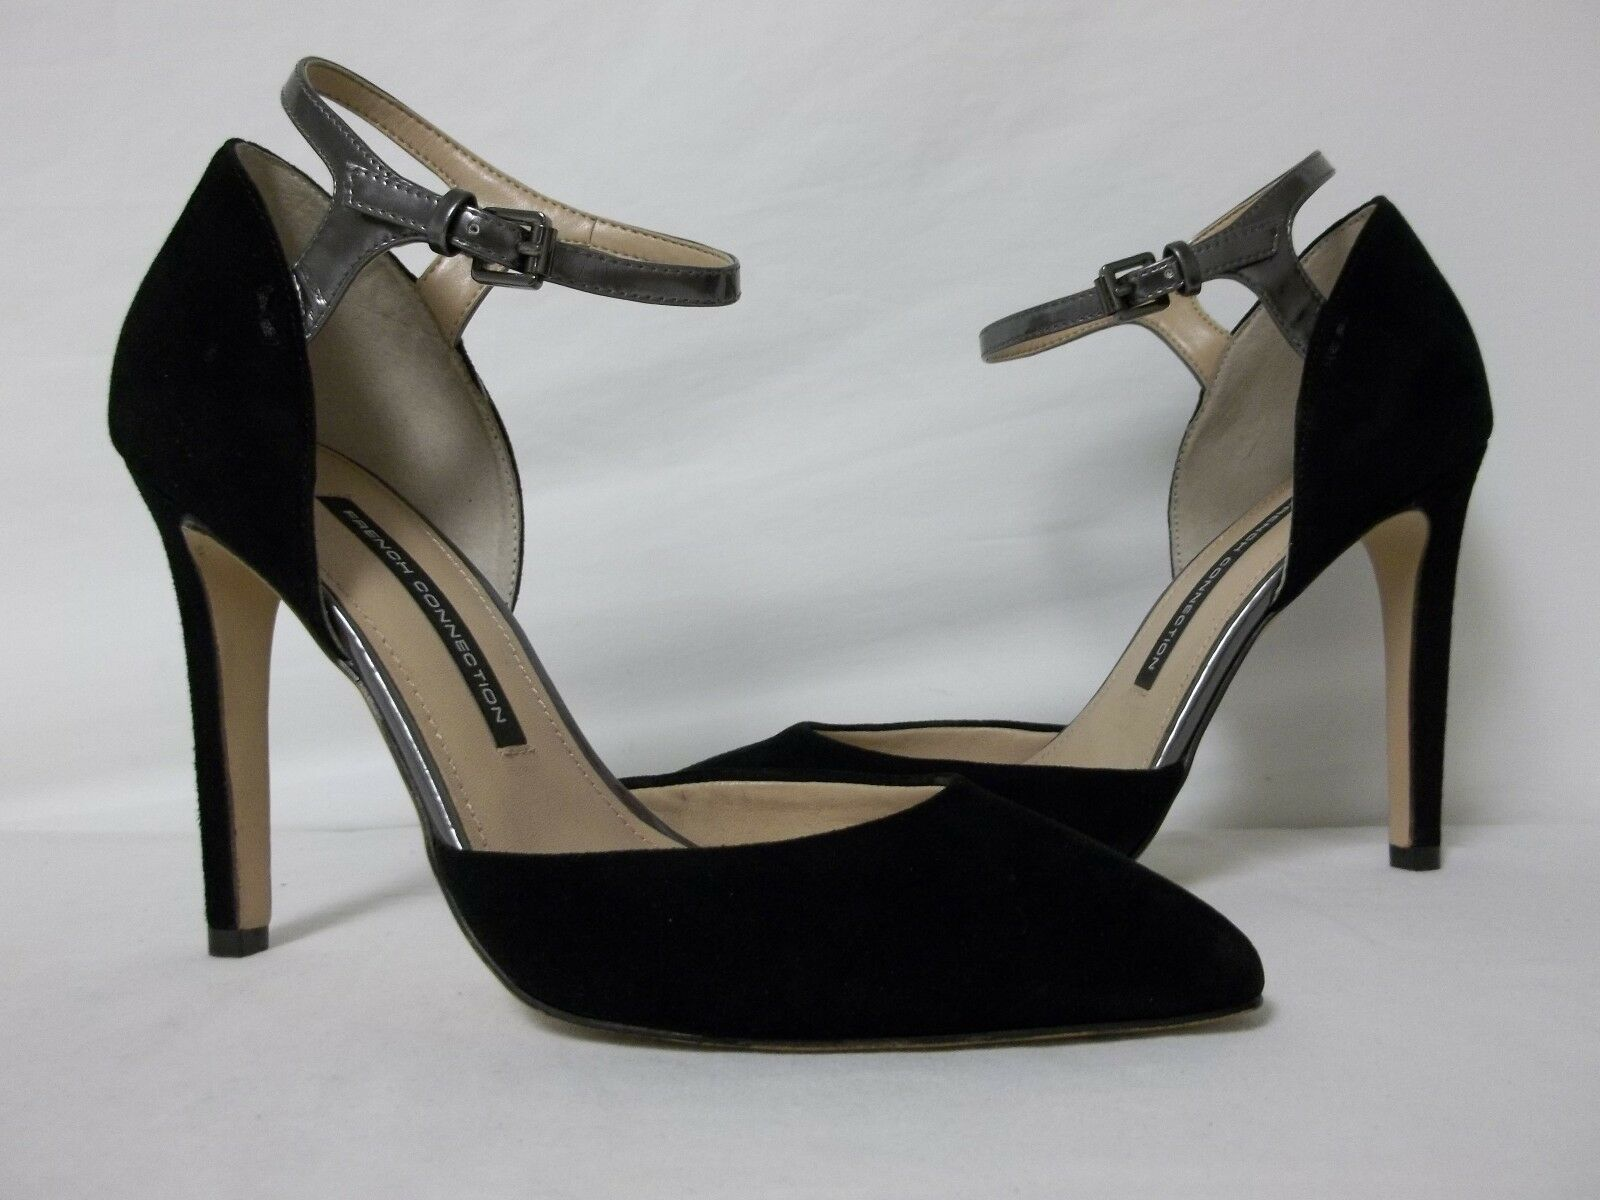 French Connection EU 39 US 8.5 M Manuela Suede Black Heels New Womens shoes NWOB